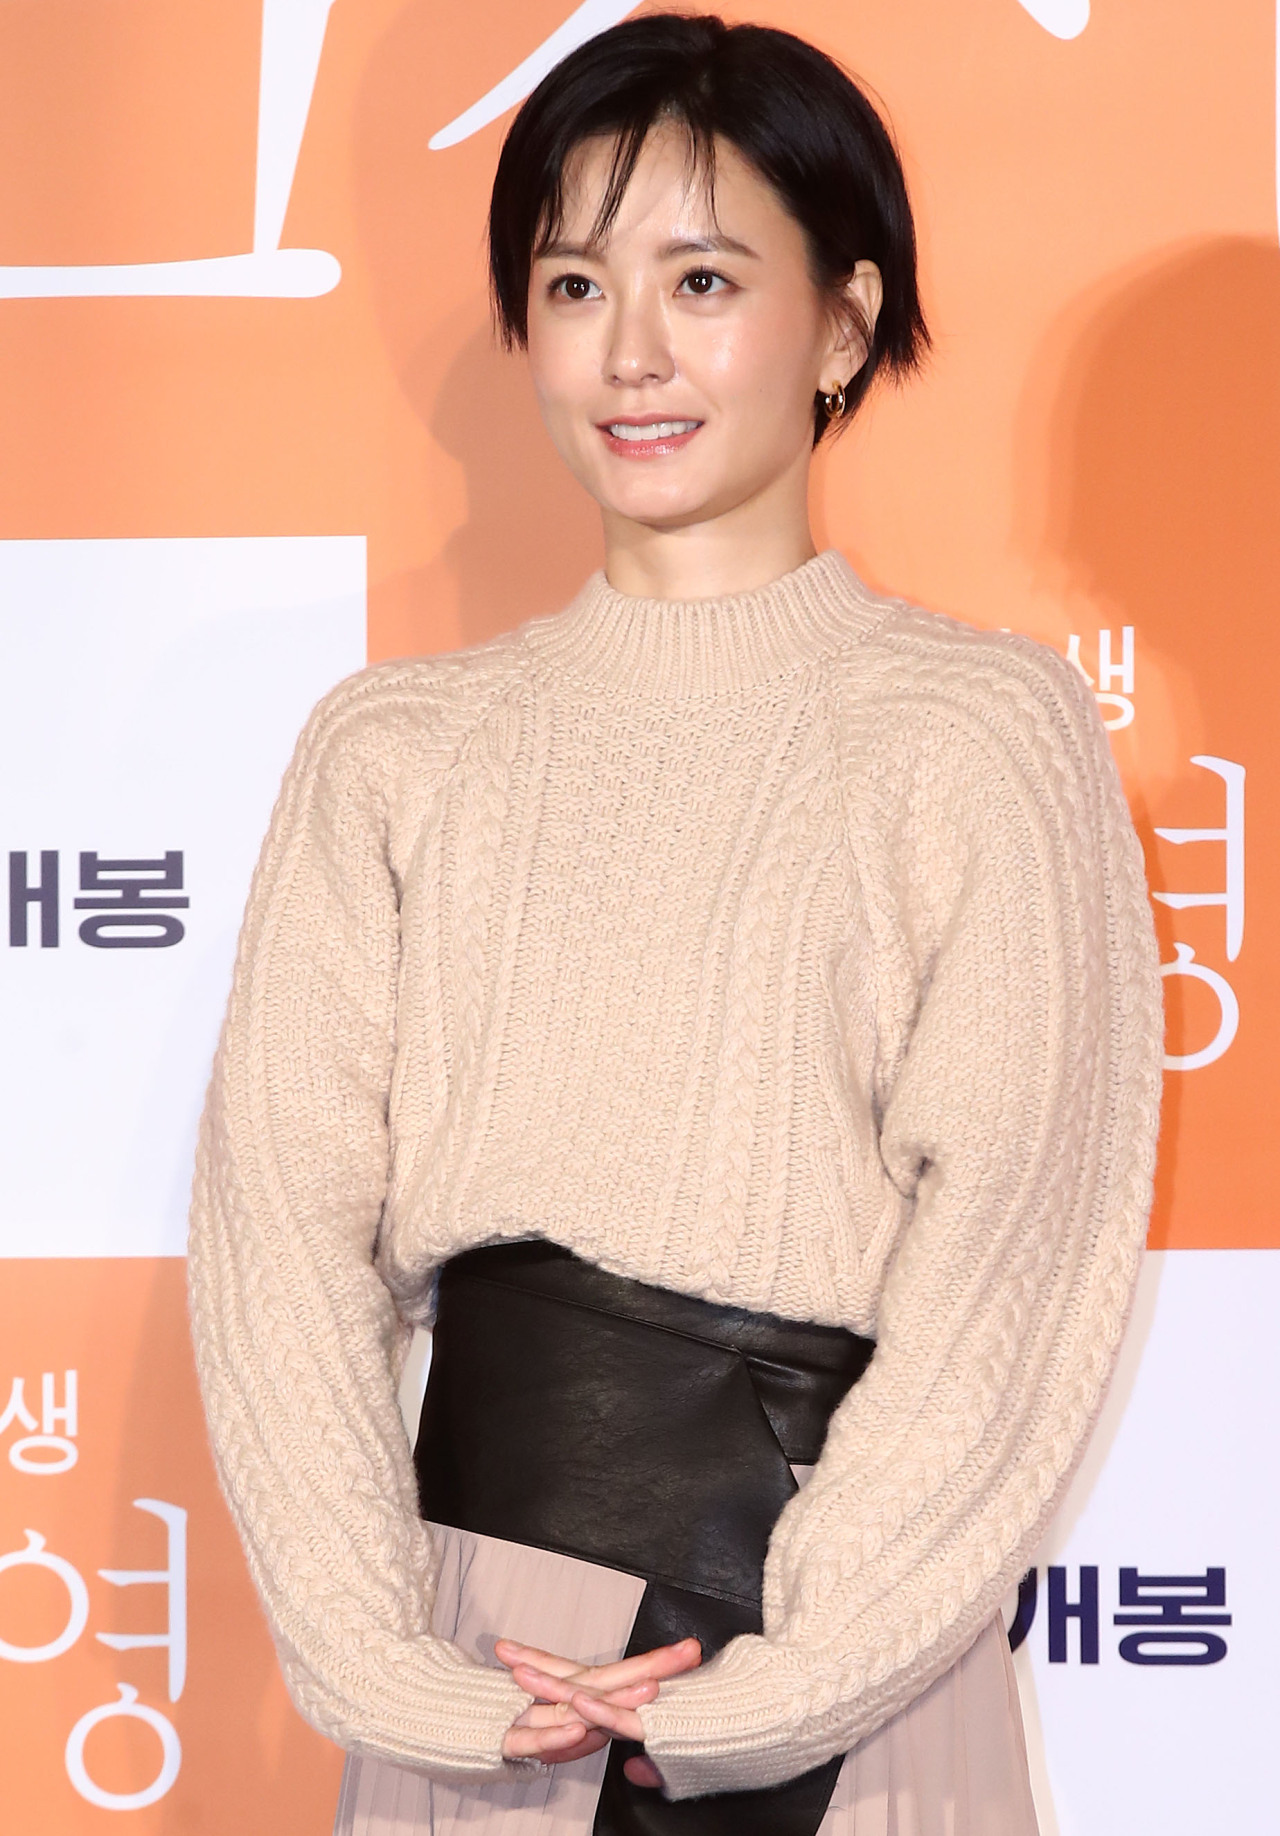 """Jung Yu-mi poses during a press conference to promote """"Kim Ji-young, Born 1982,"""" in Seoul on Monday. (Yonhap)"""